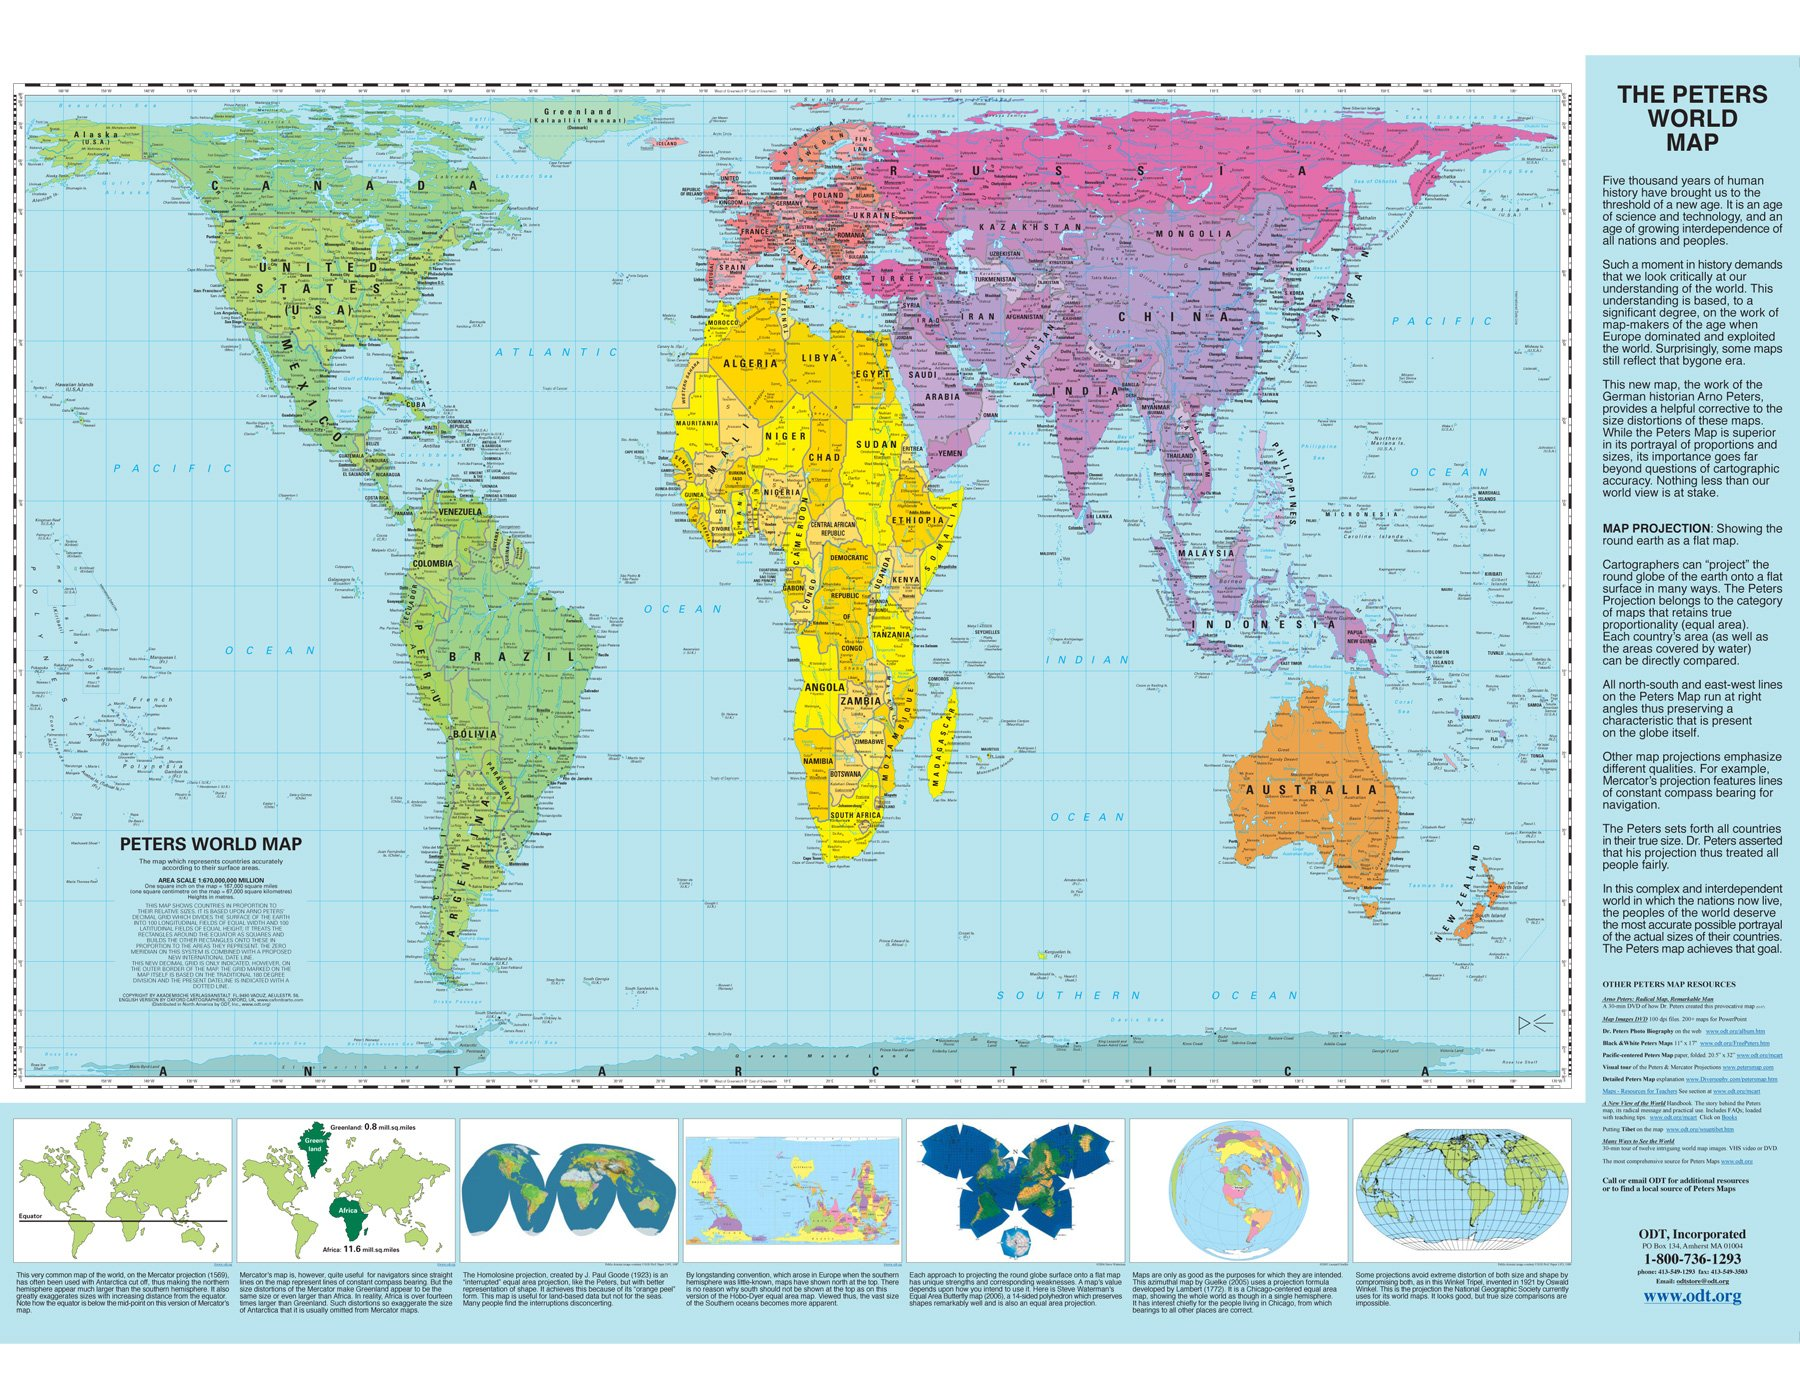 Peters Projection World Map Laminated Arno Peters ODTmapscom - Accrate map of us